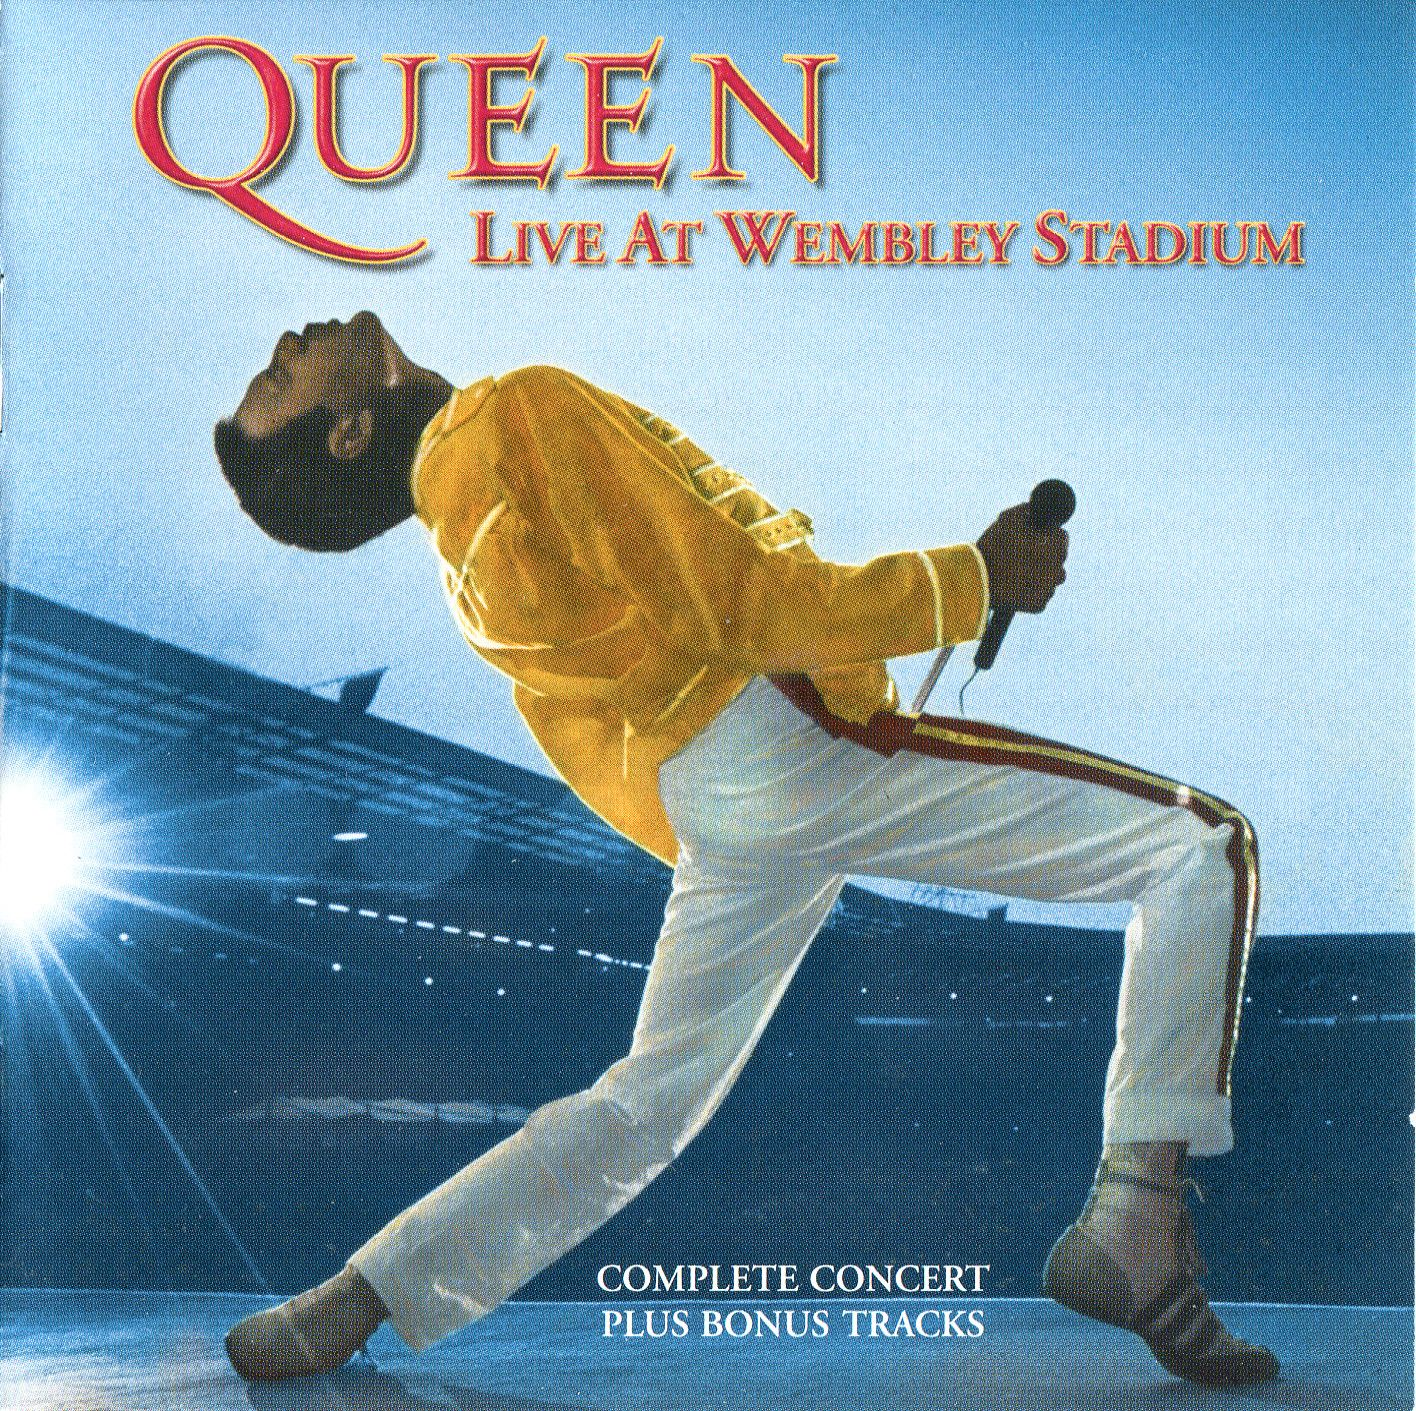 Queen - Live At Wembley Stadium '86 album cover